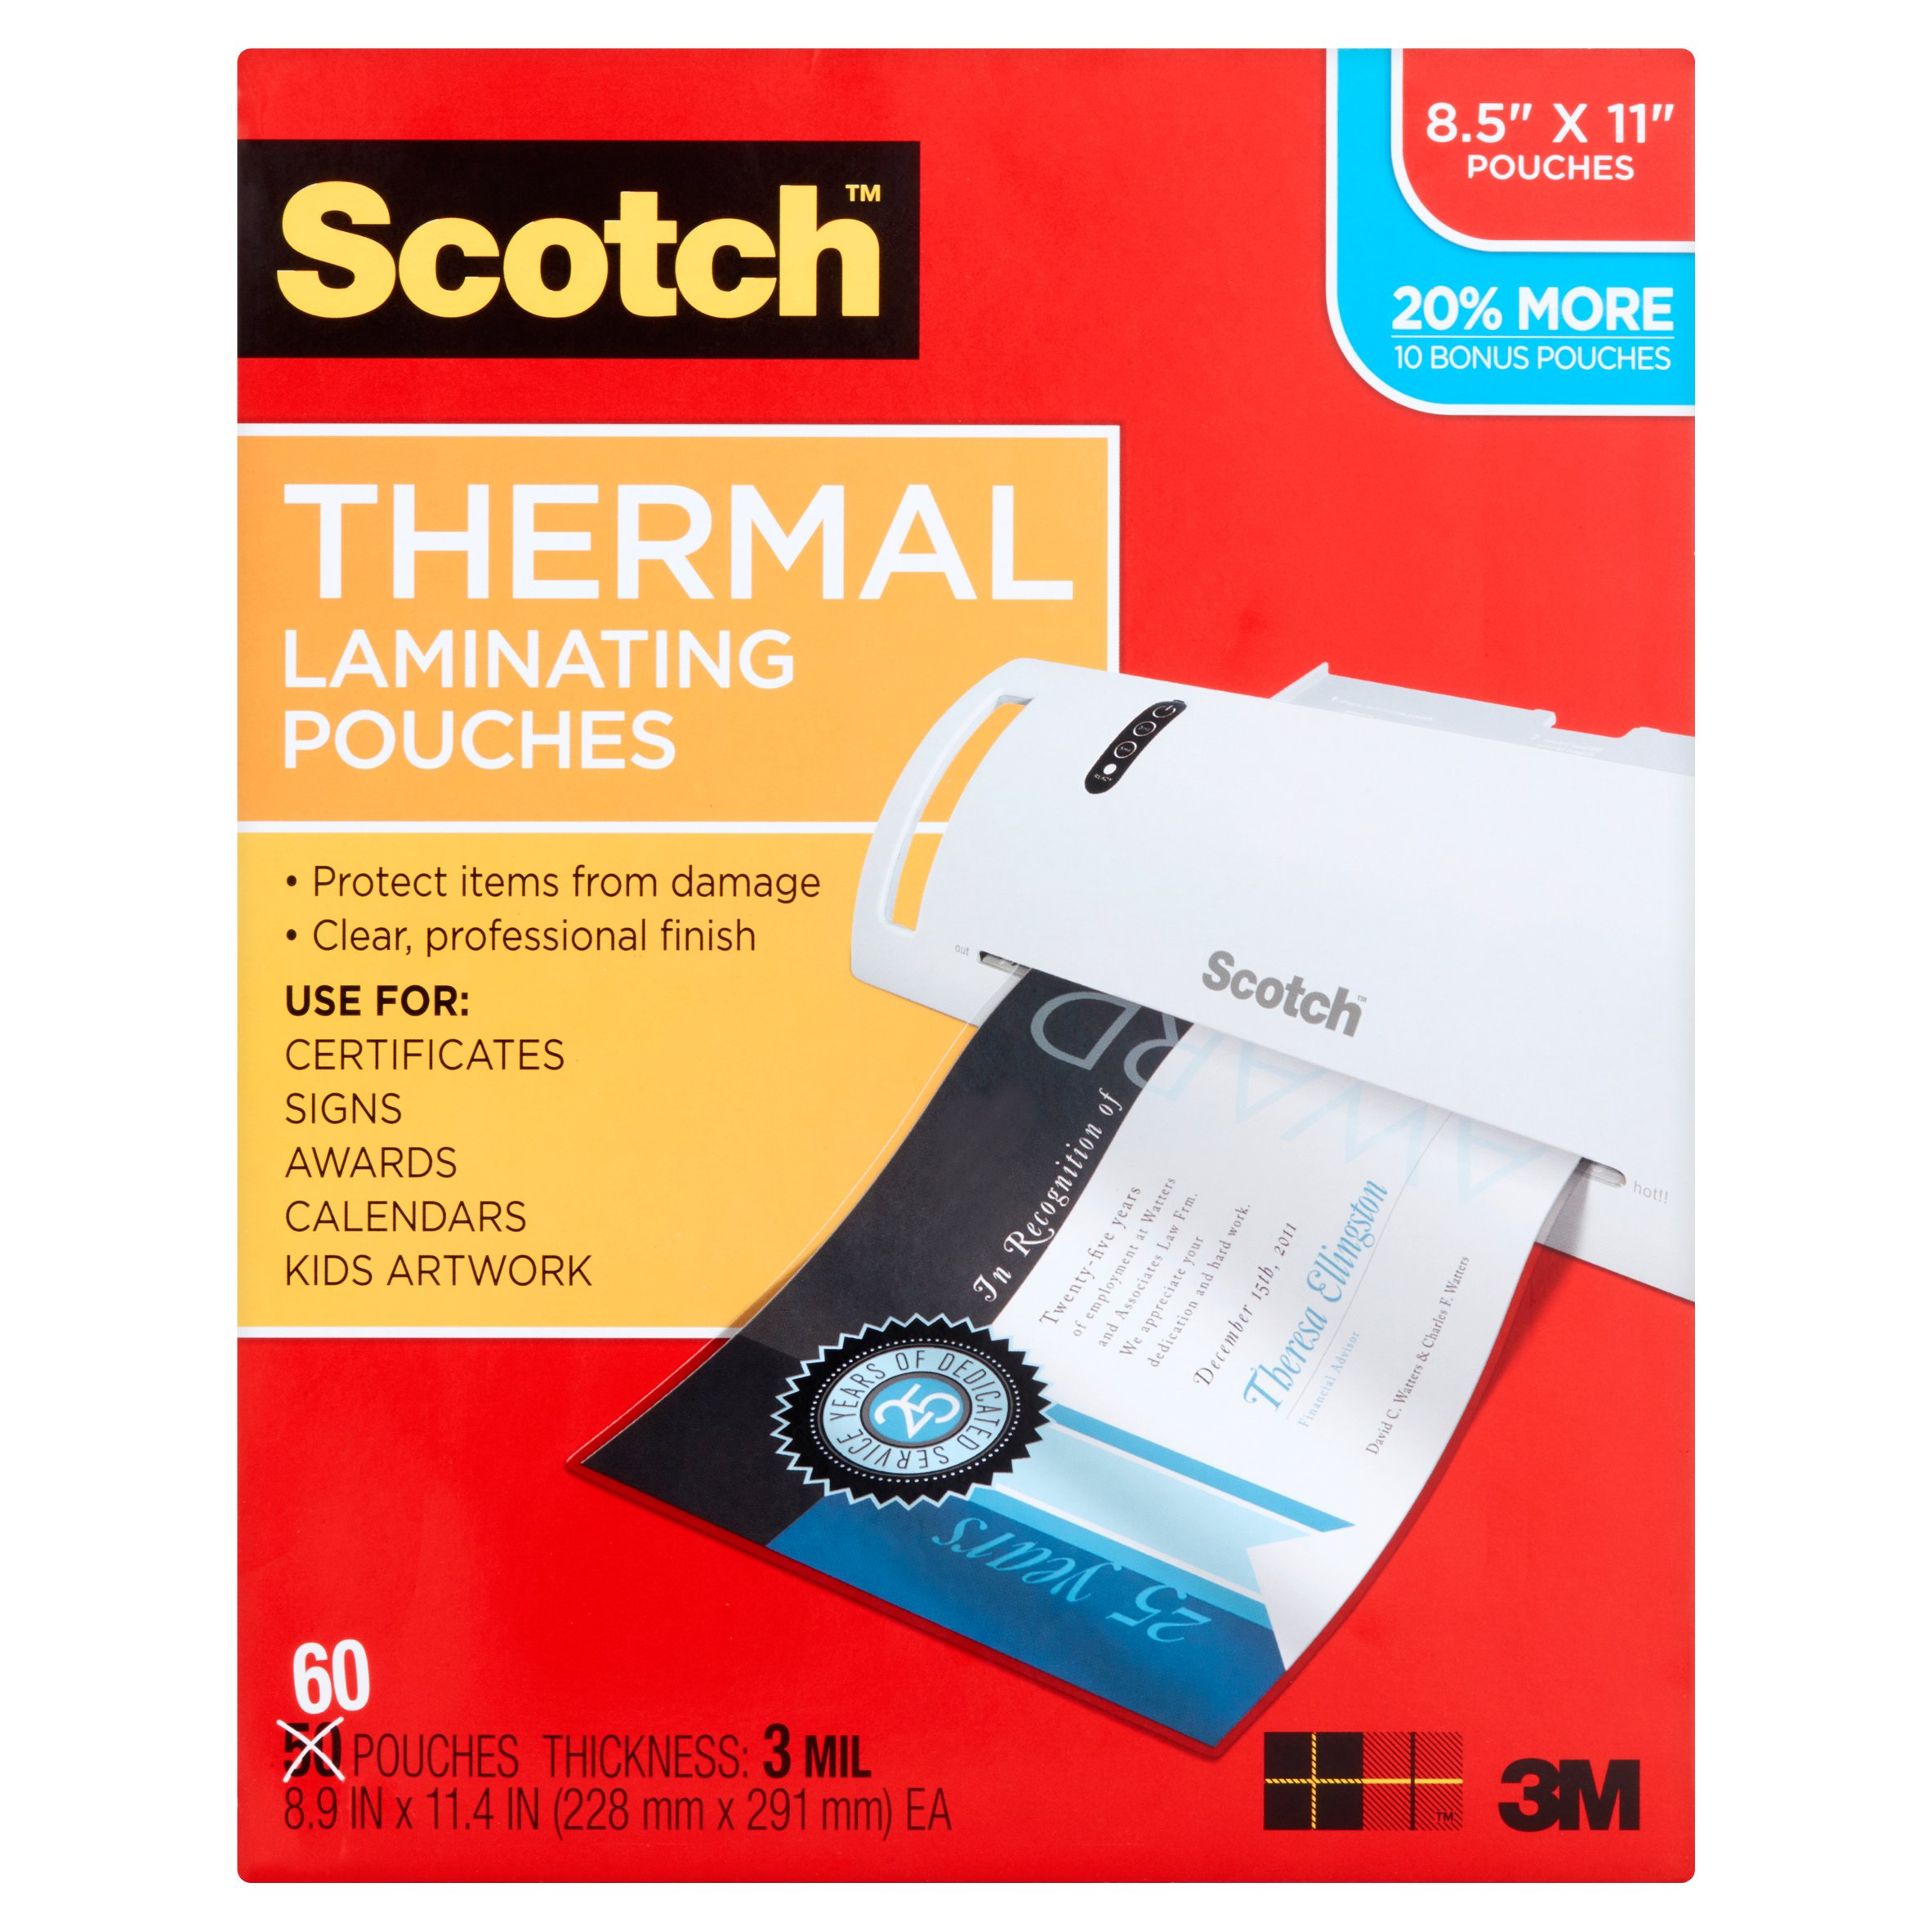 Scotch Thermal Laminating Pouches 60 pack, Letter Size Sheets